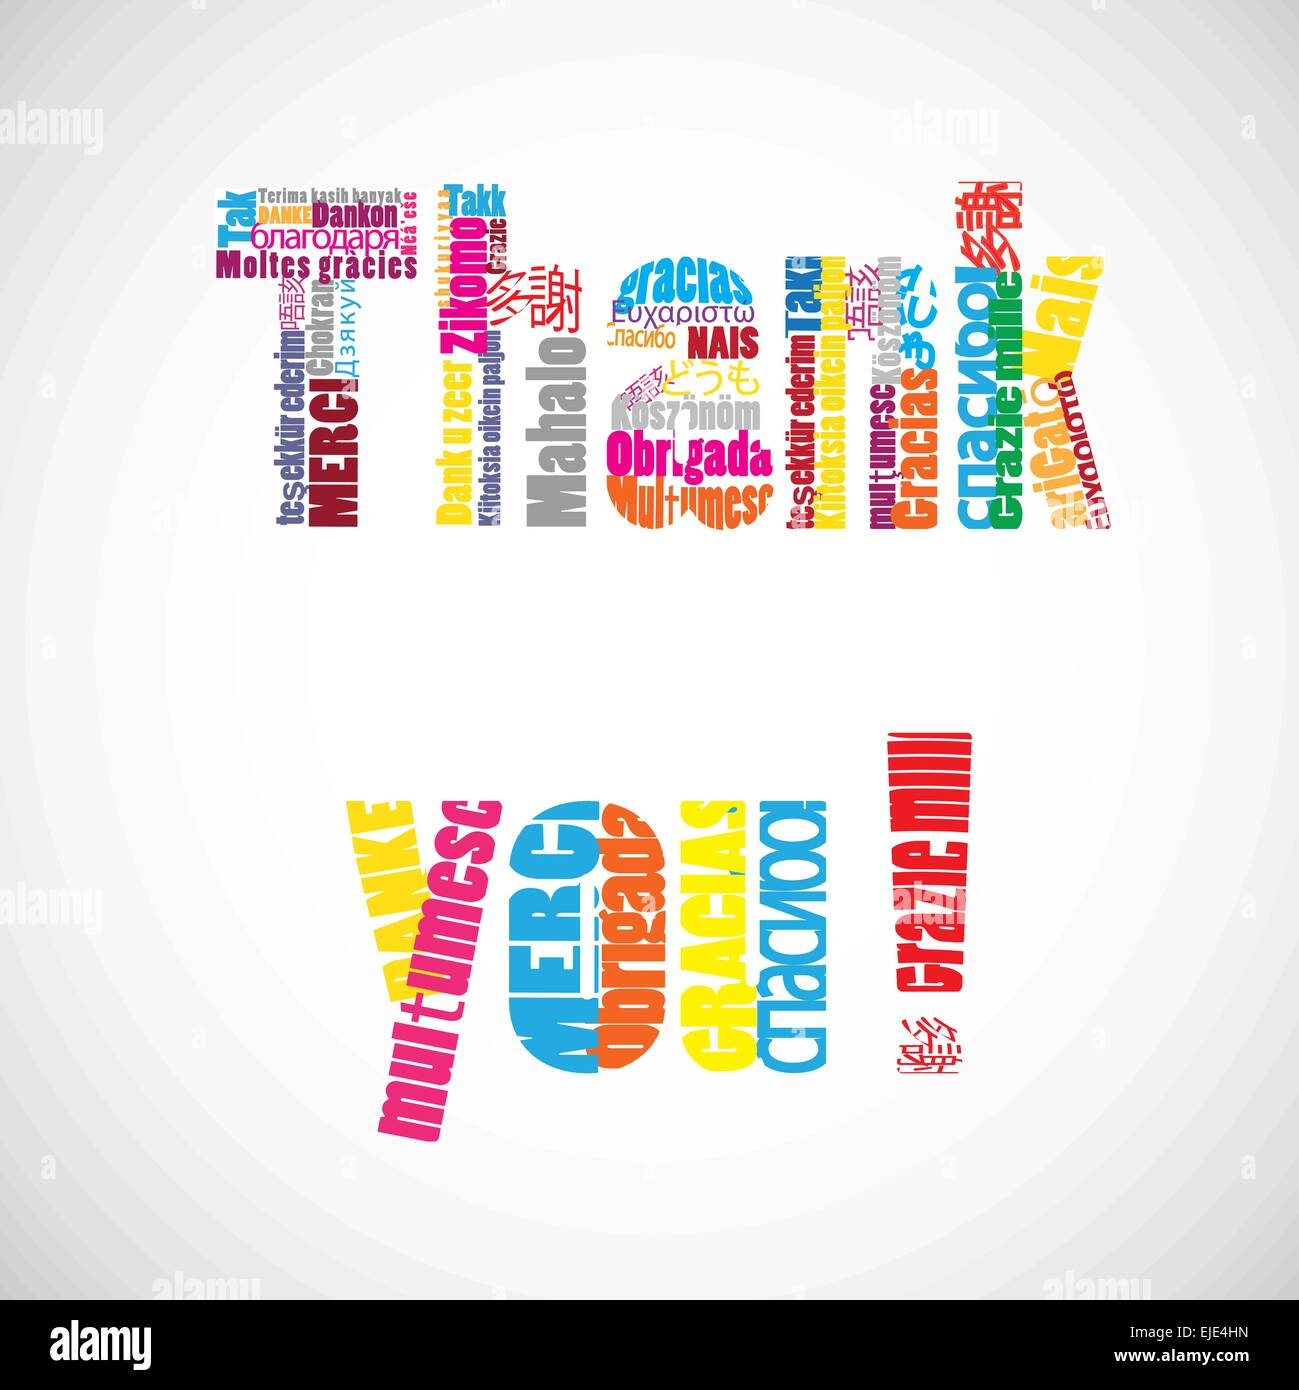 Thank you vector text with translations in many languages. - Stock Image